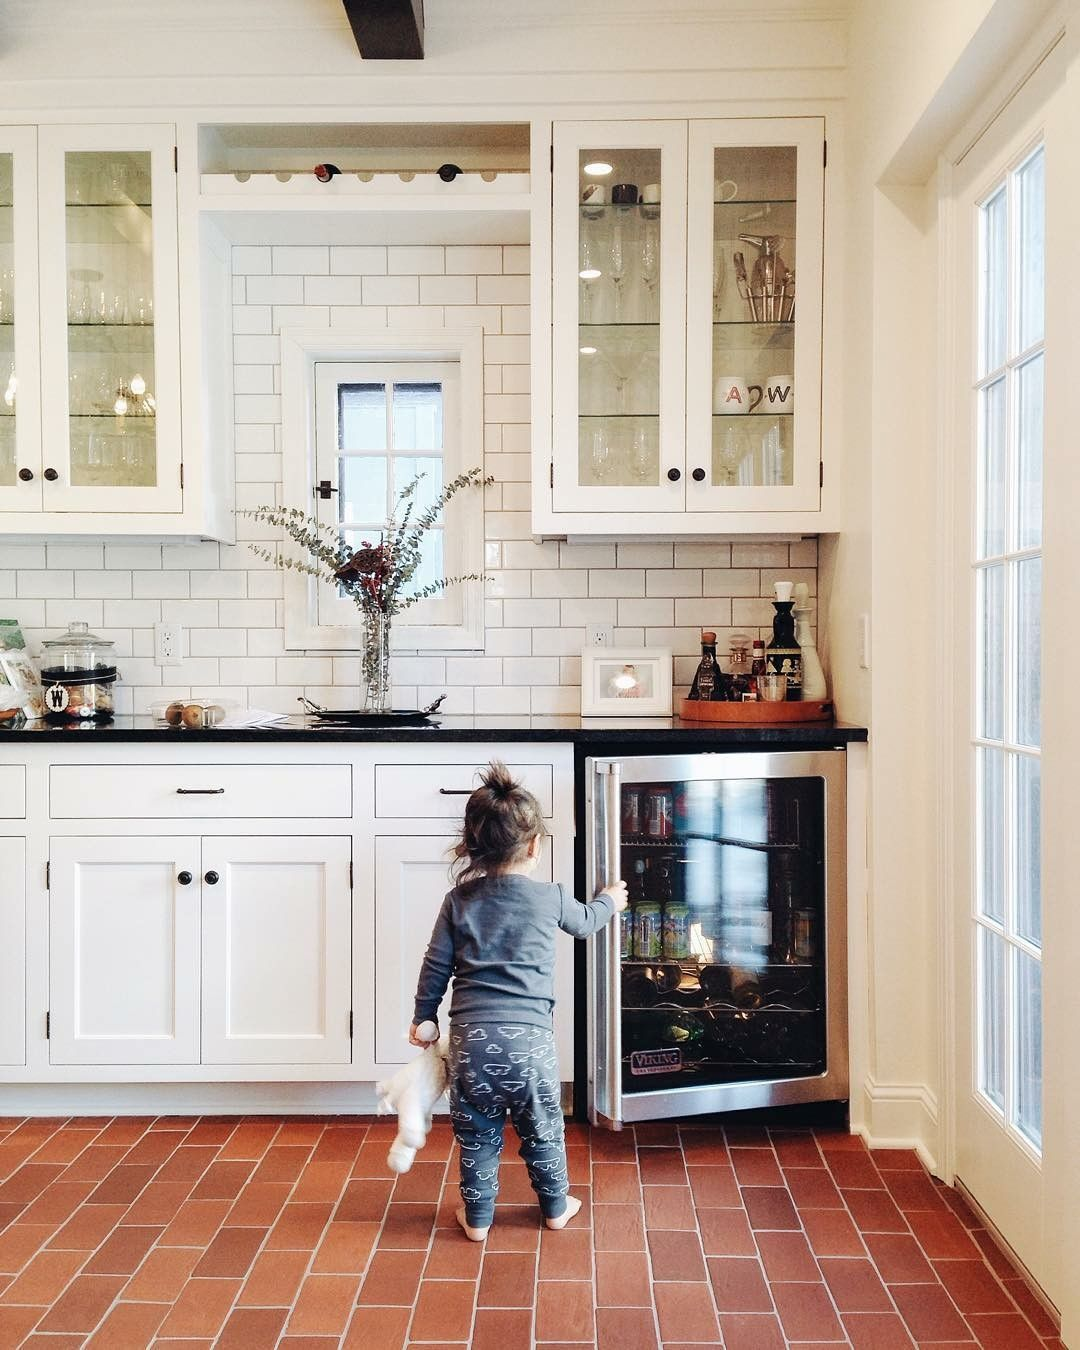 Brick Flooring Kitchen: Pin By Michelle O'Hara On Home